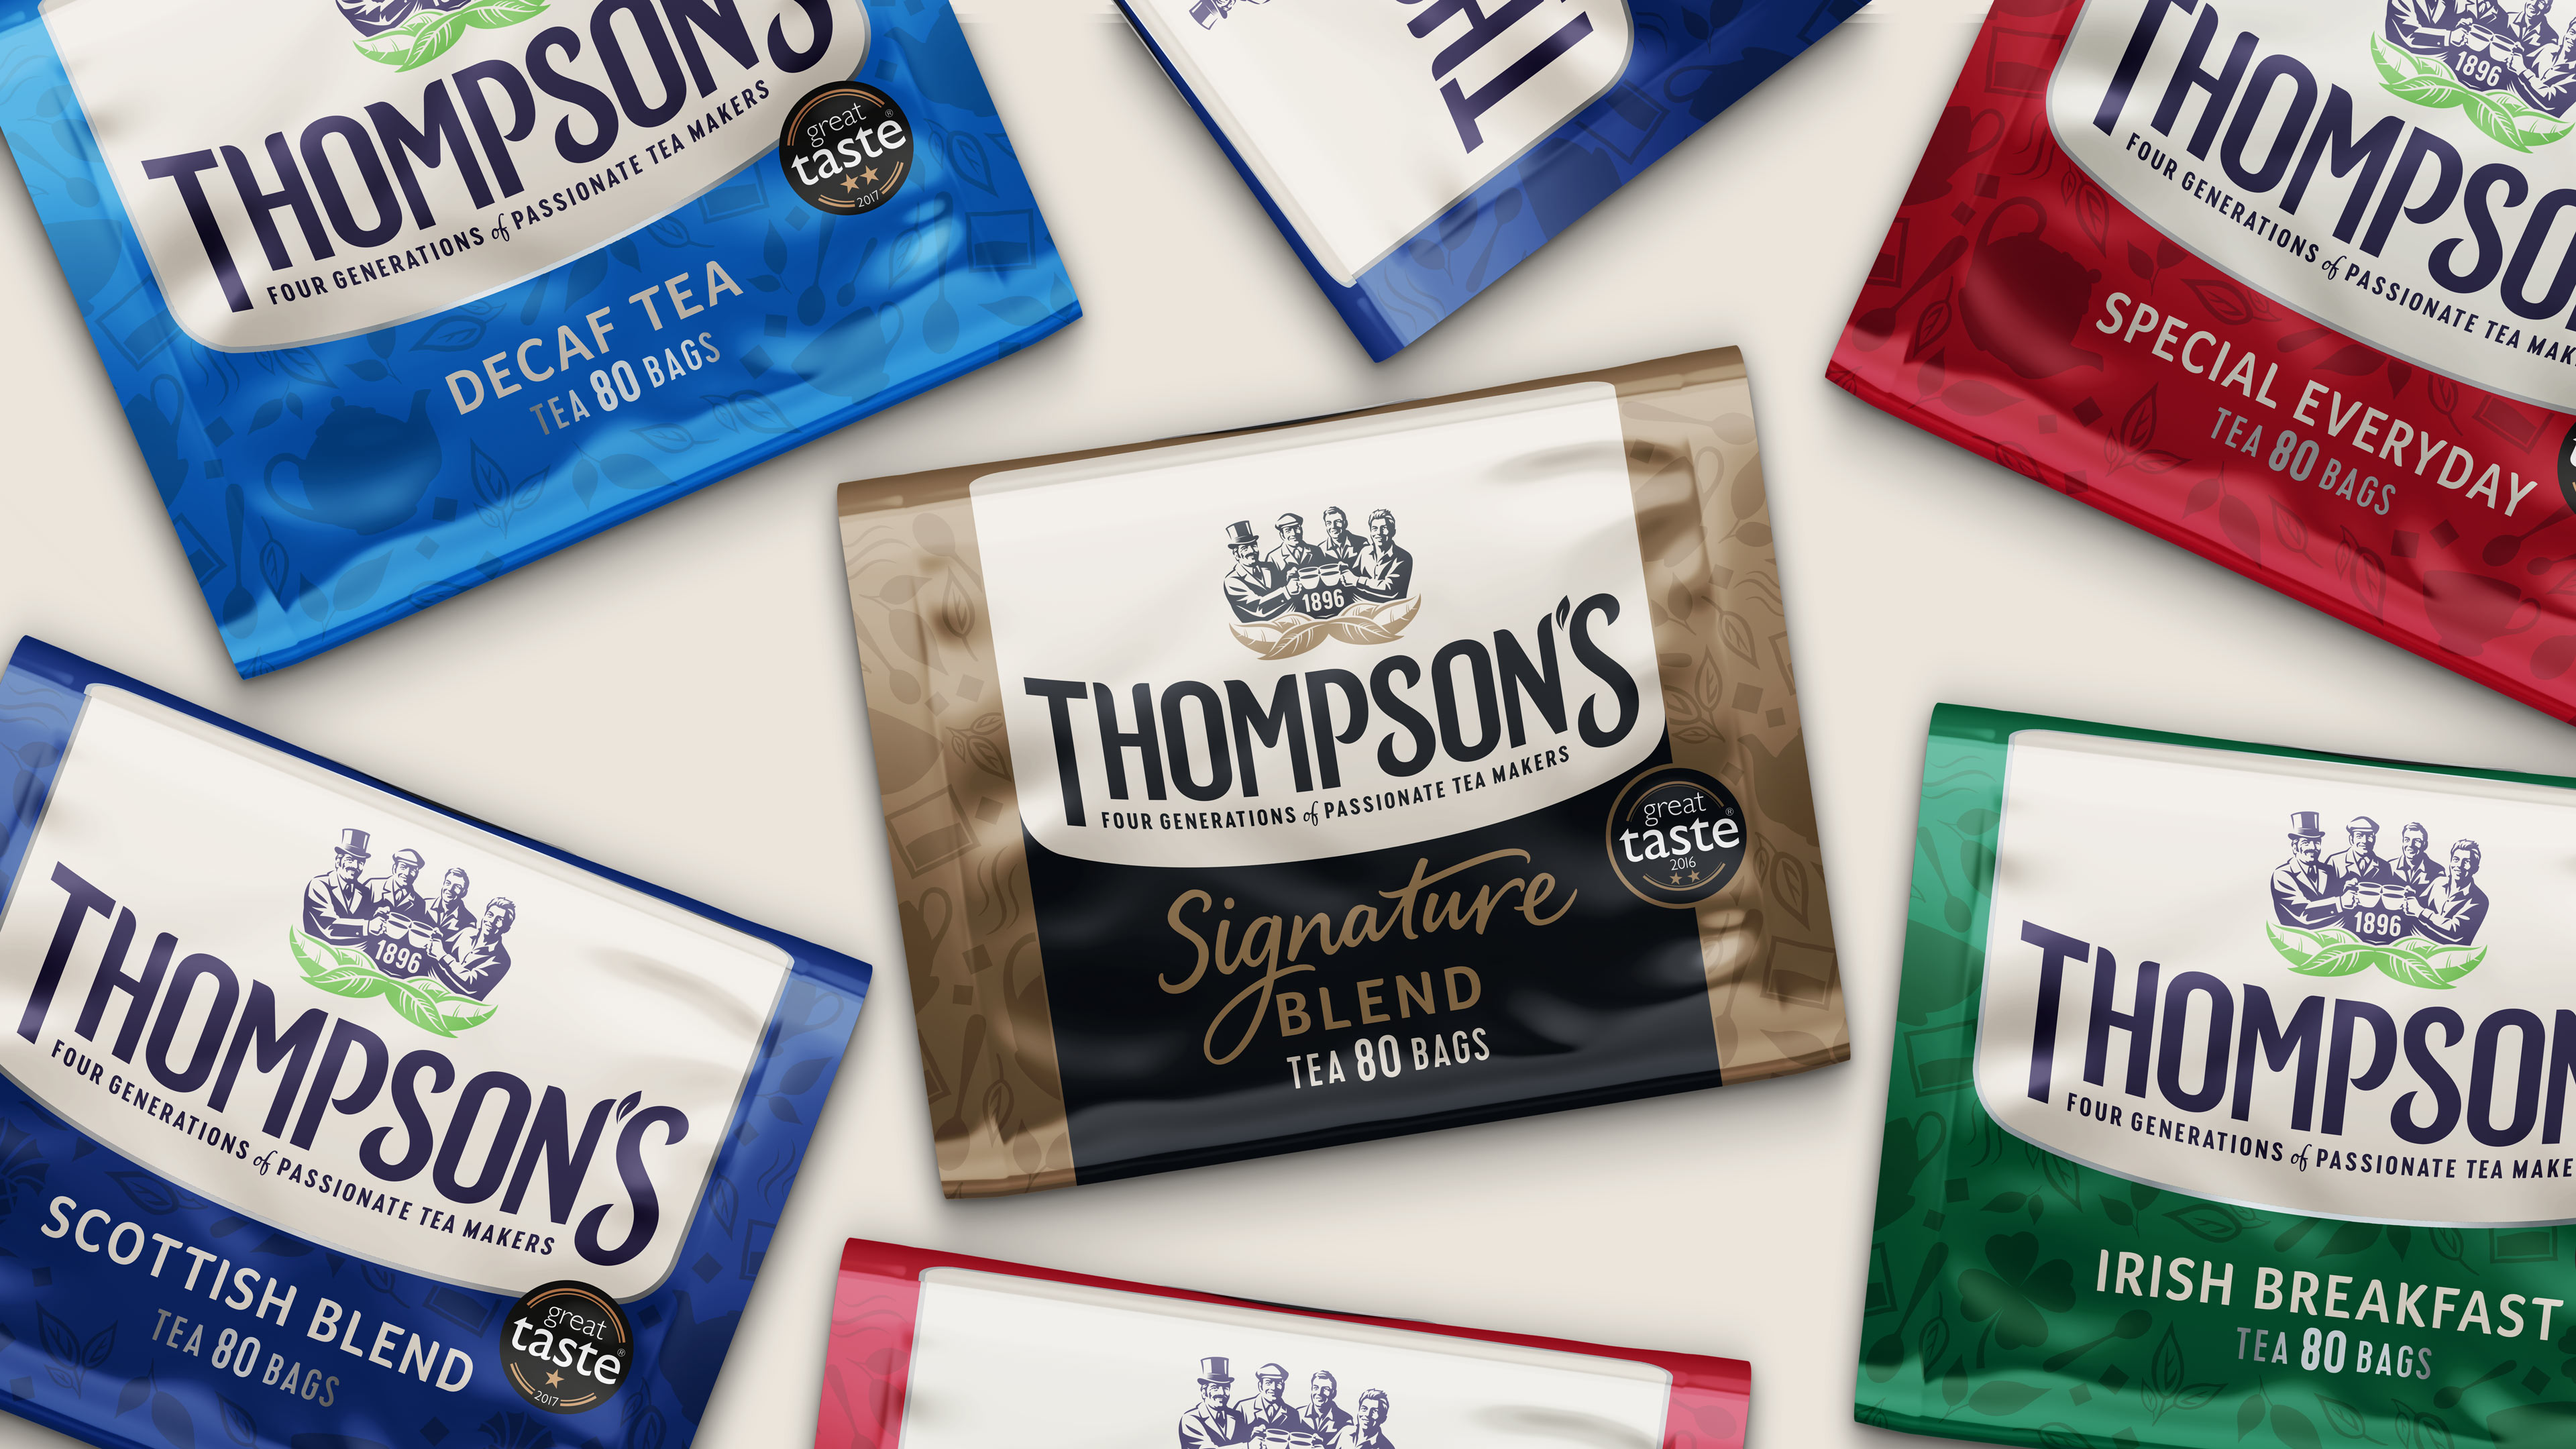 Thompson's - BrandMe